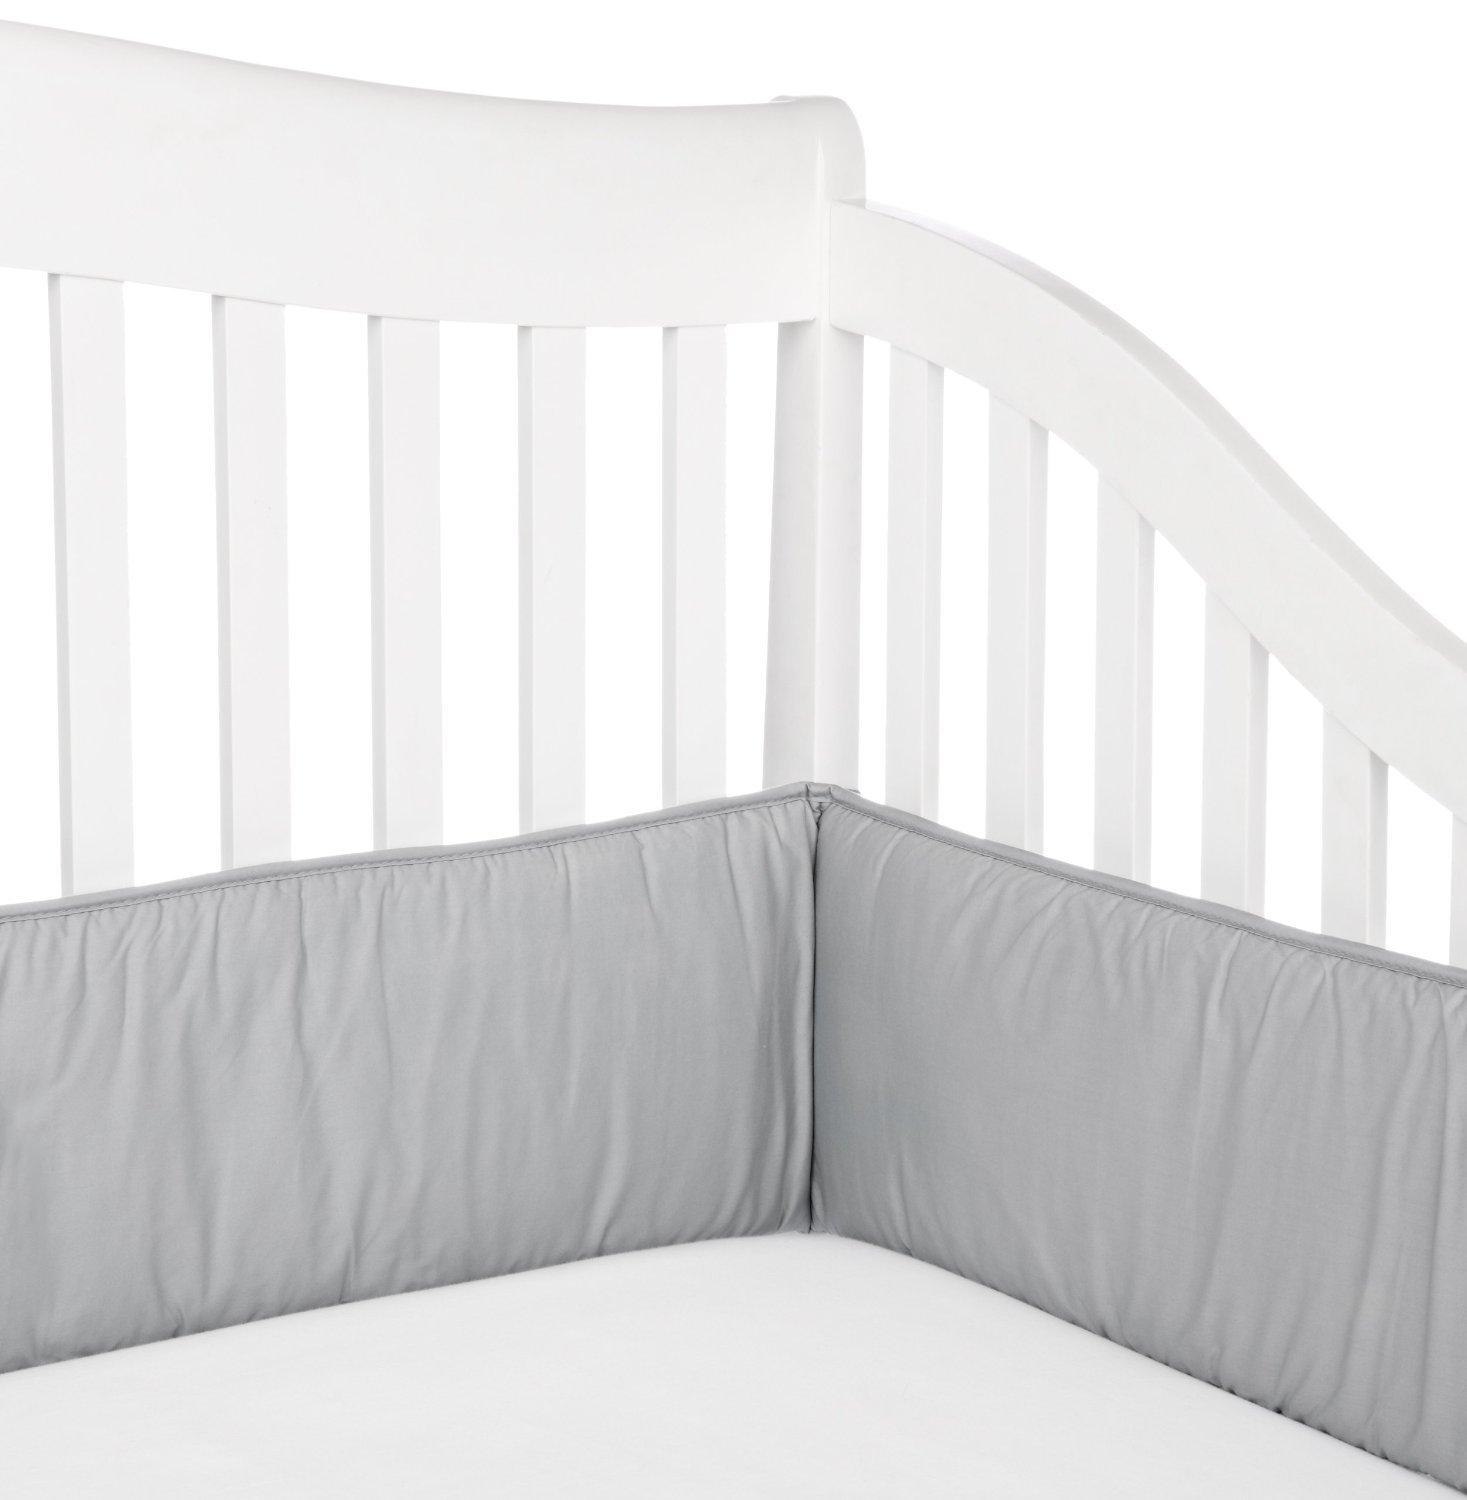 cushions cot where bed baby crib to montessori bolsters bolster buy bumpers pin toddler pads bumper house